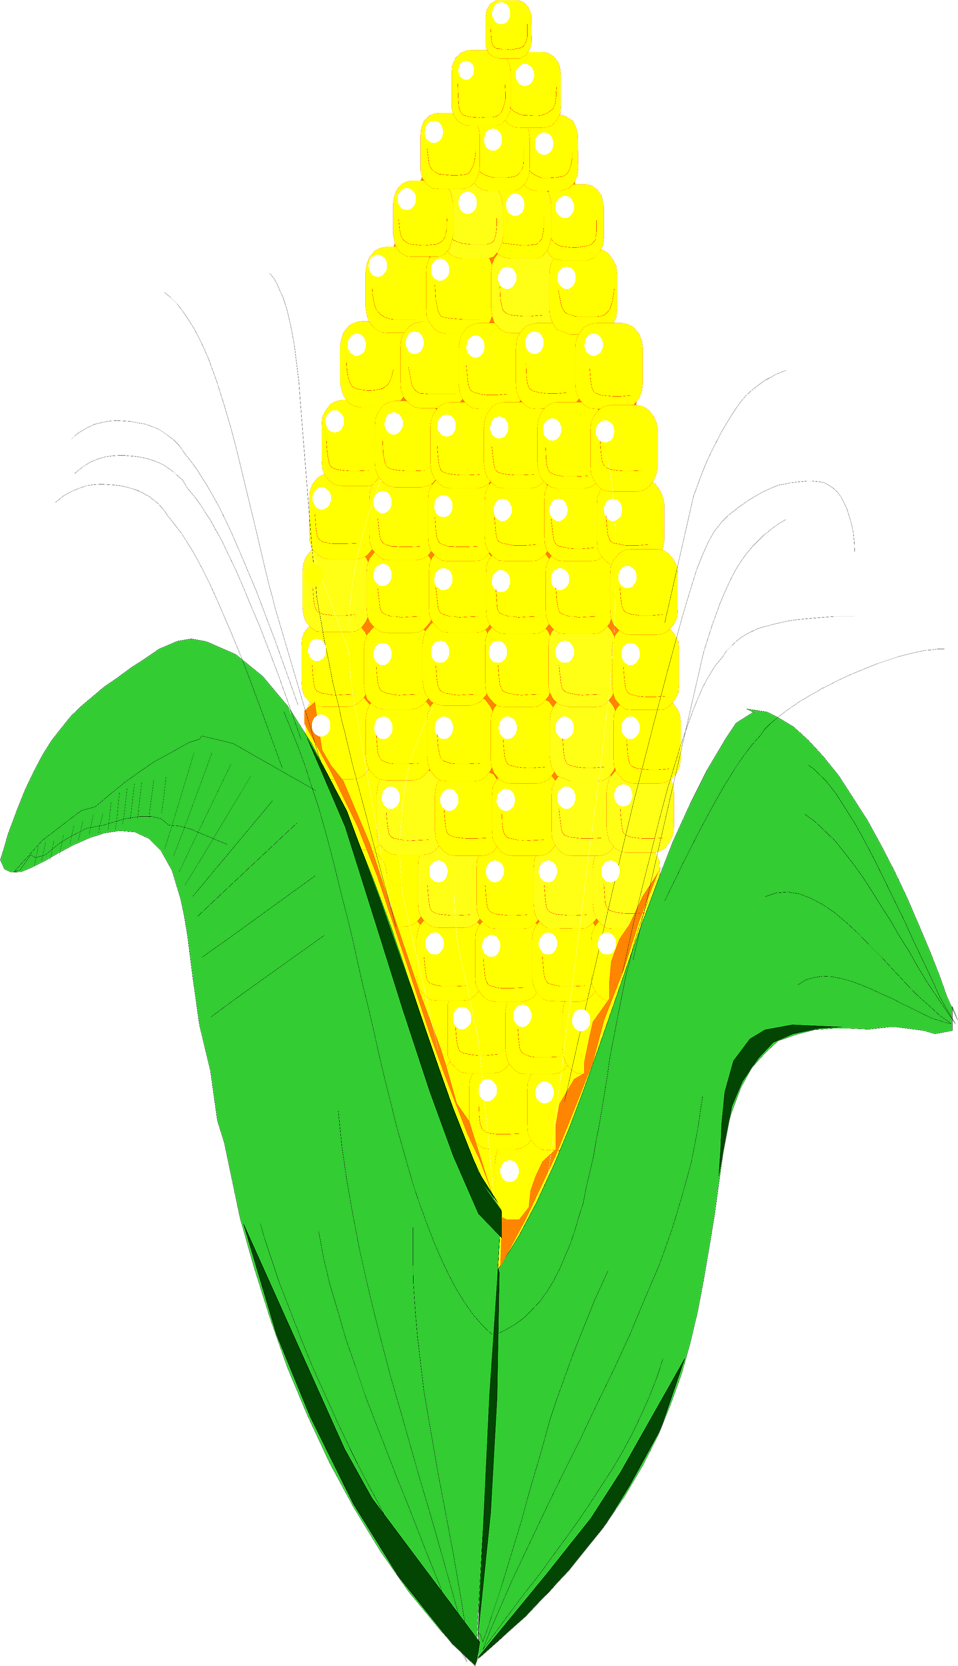 Corn clipart animated. Free stock photo illustration